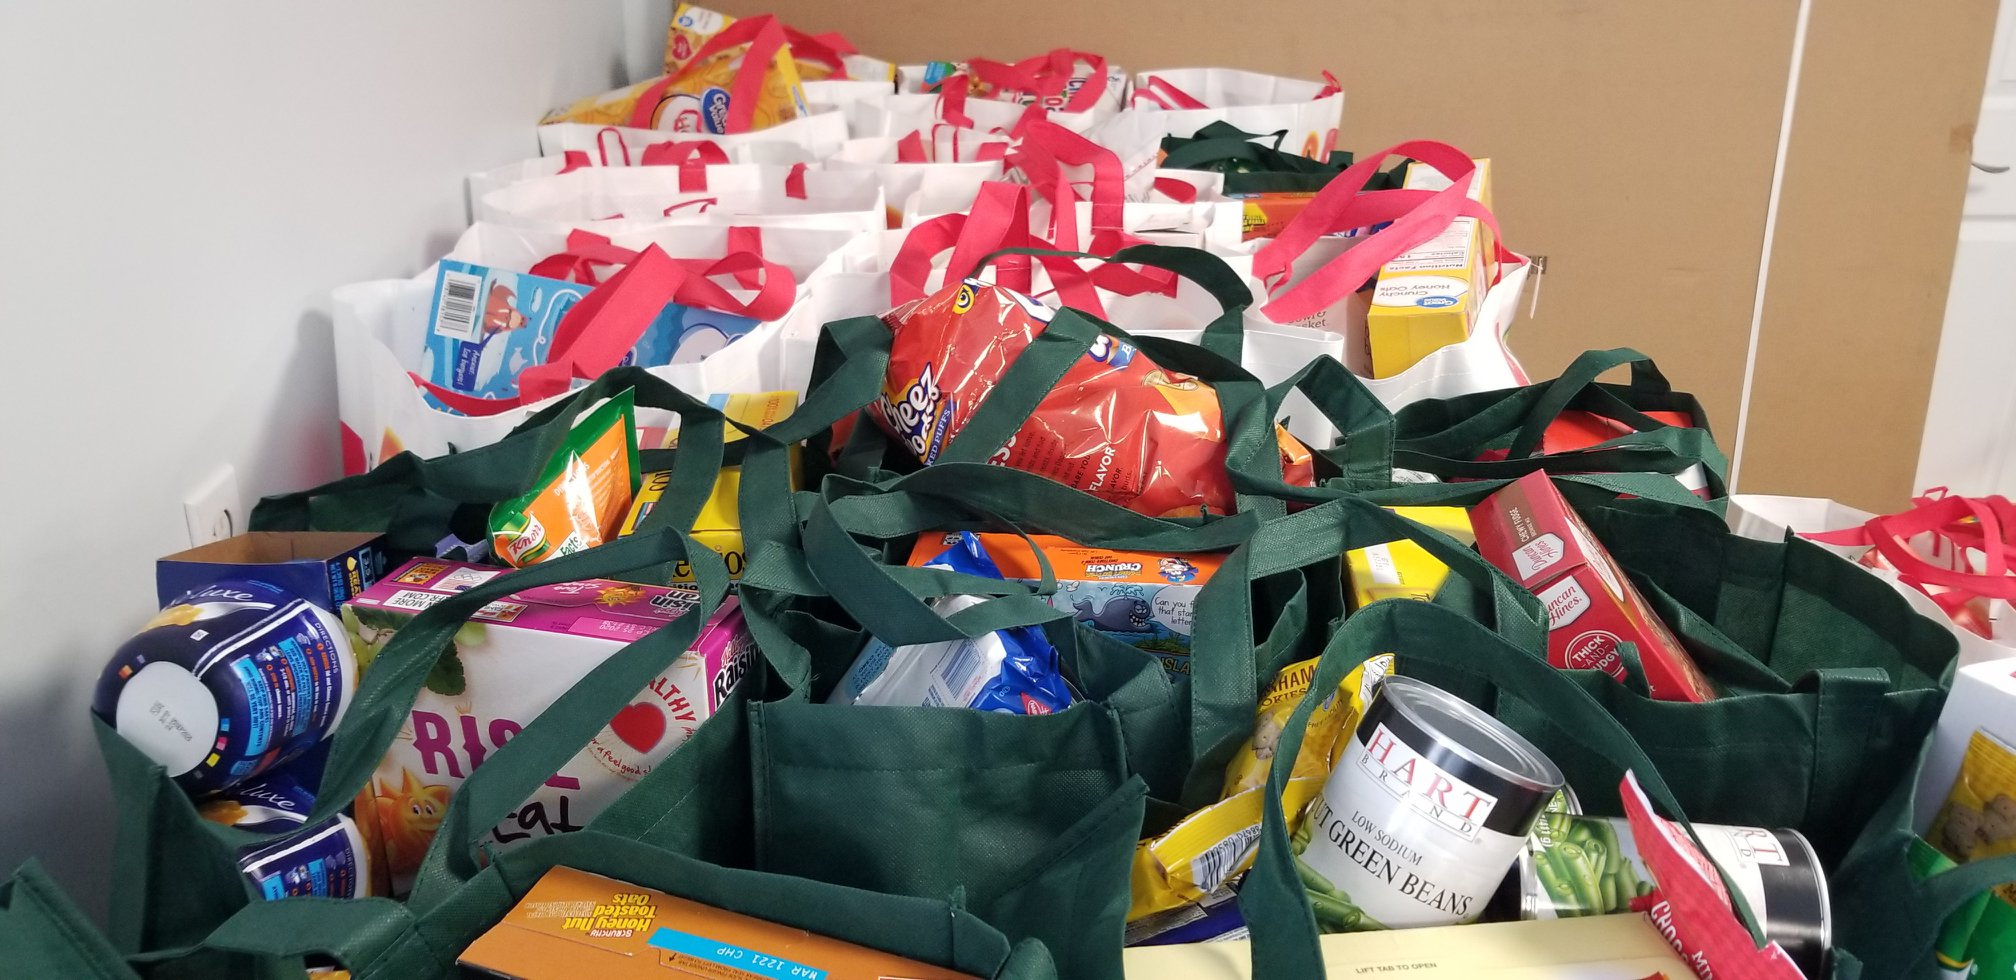 reusable bags full of groceries for thanksgiving food drive